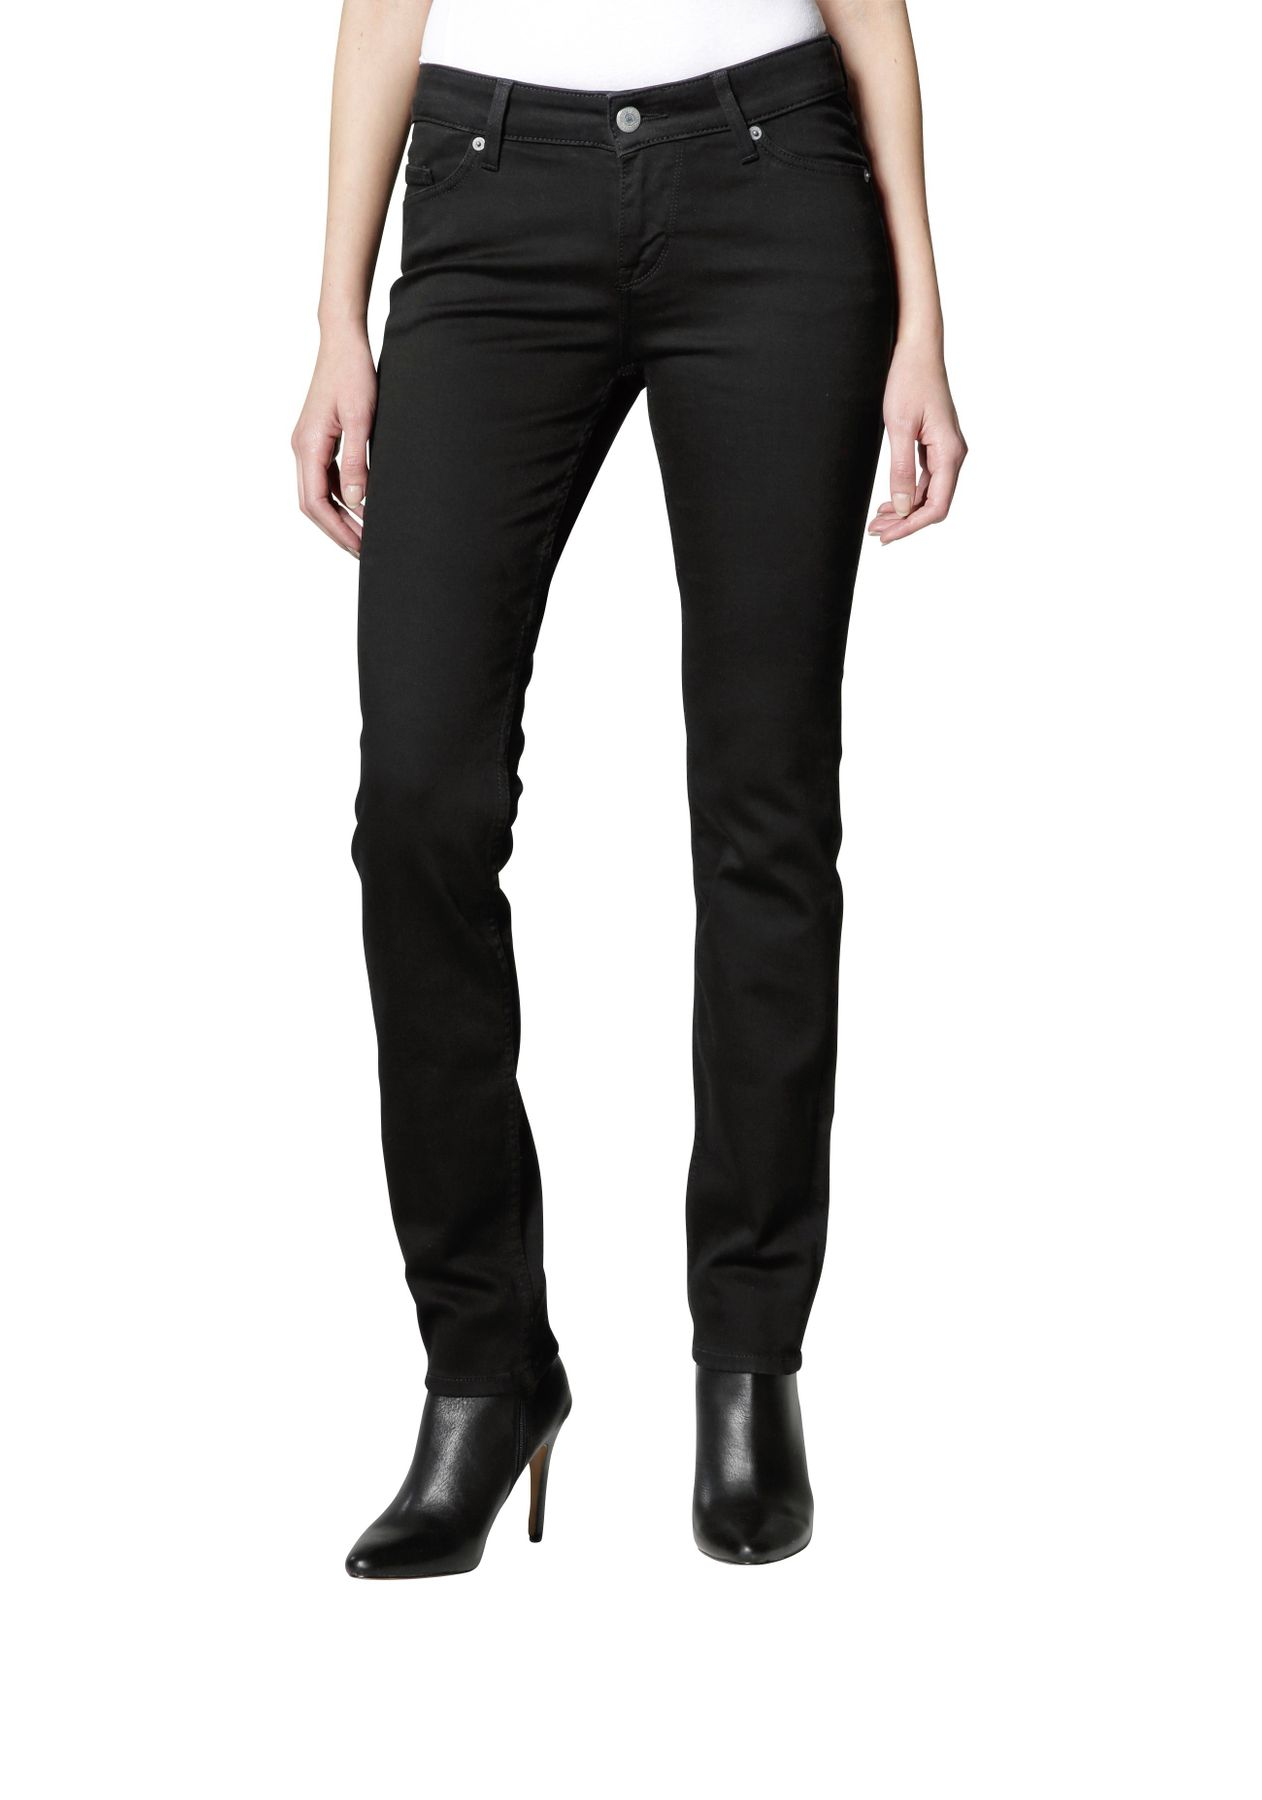 Mustang - Slim Leg/Medium Rise - Damen Jeans Hose in Schwarz (midnight black), Jasmin Slim (586-5174-490)